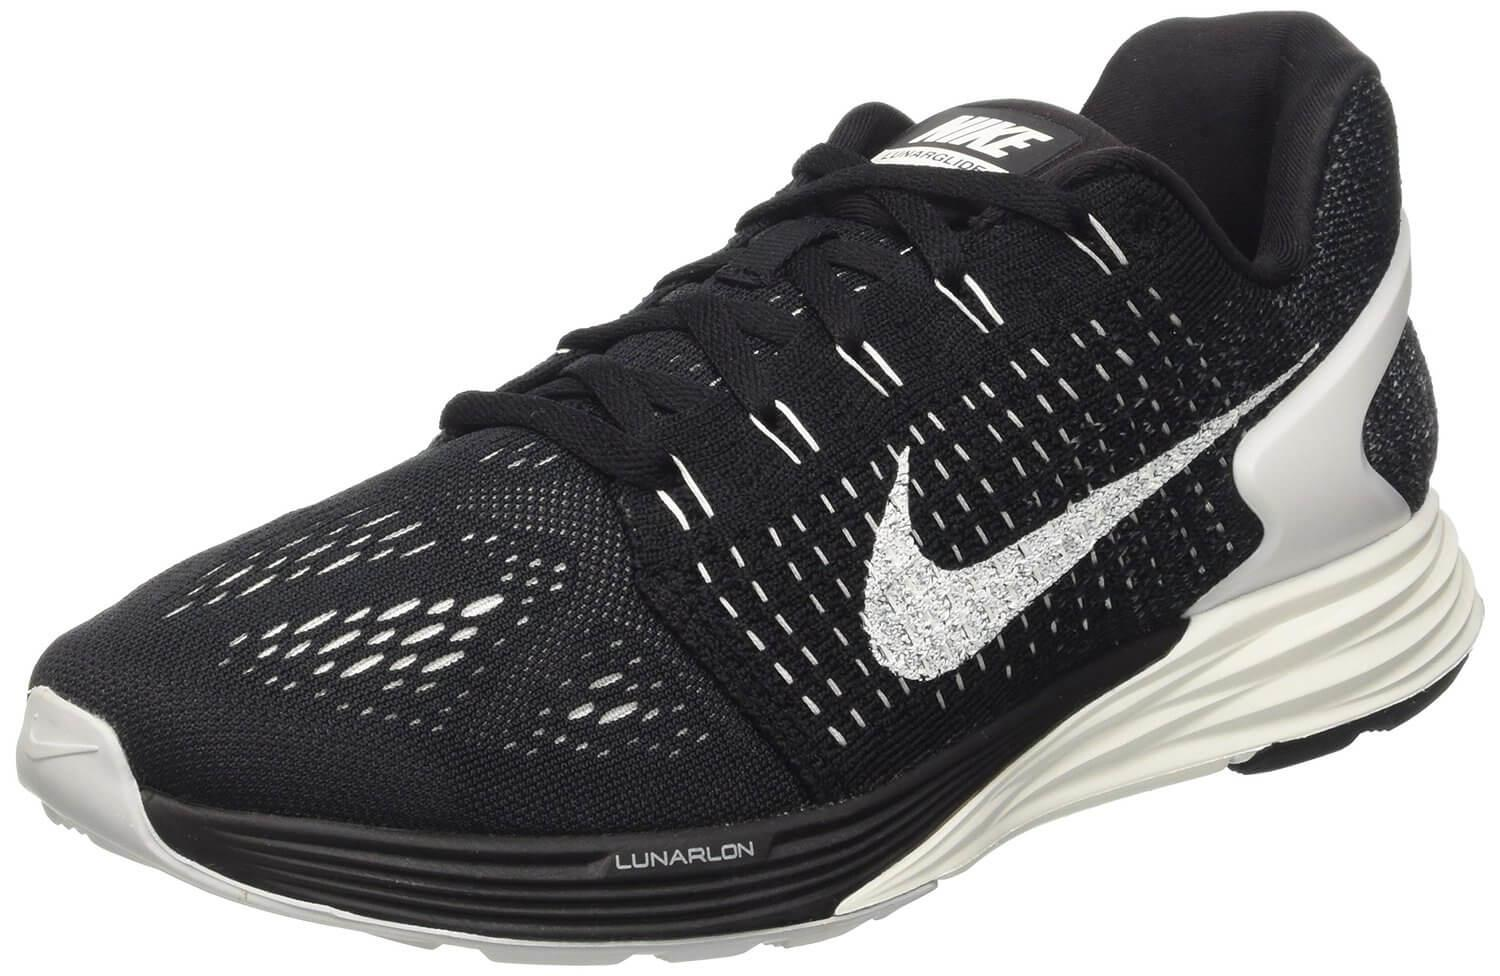 Nike LunarGlide 7 Reviewed - To Buy or Not in Mar 2019  18b5d4936